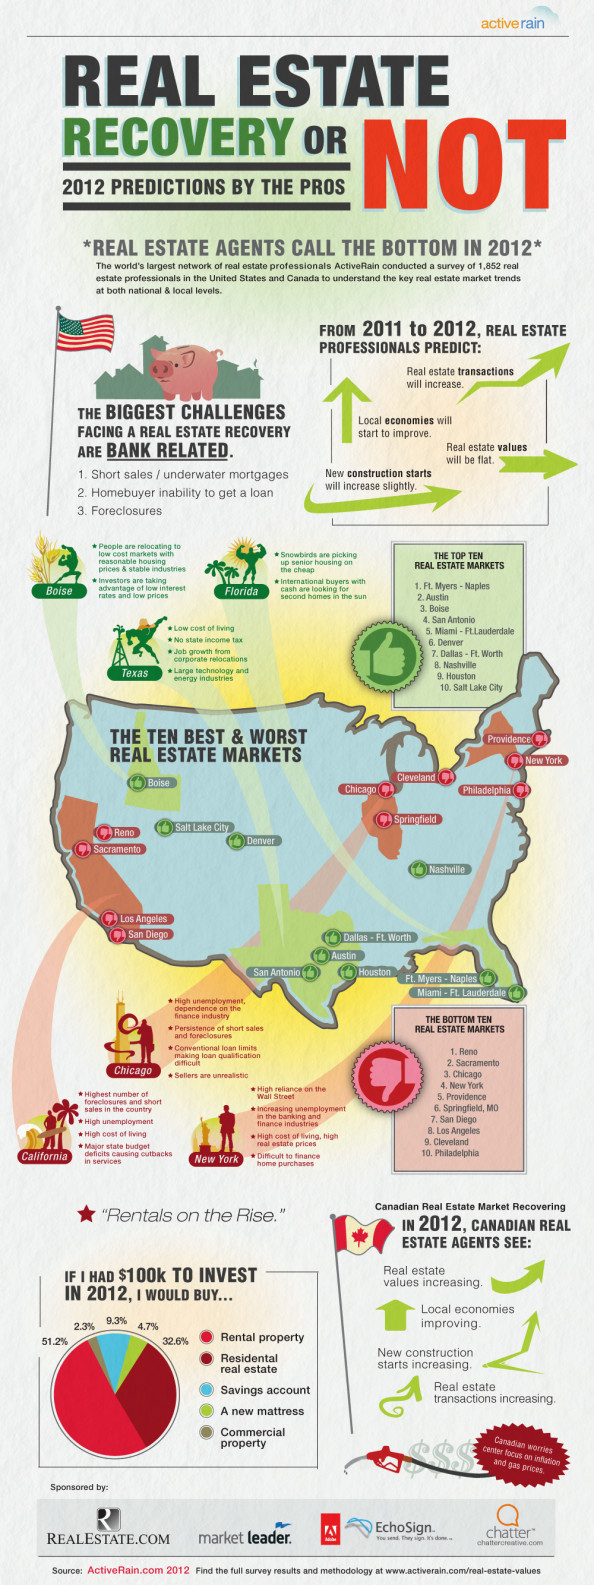 2012 Real Estate Market Predictions Infographic